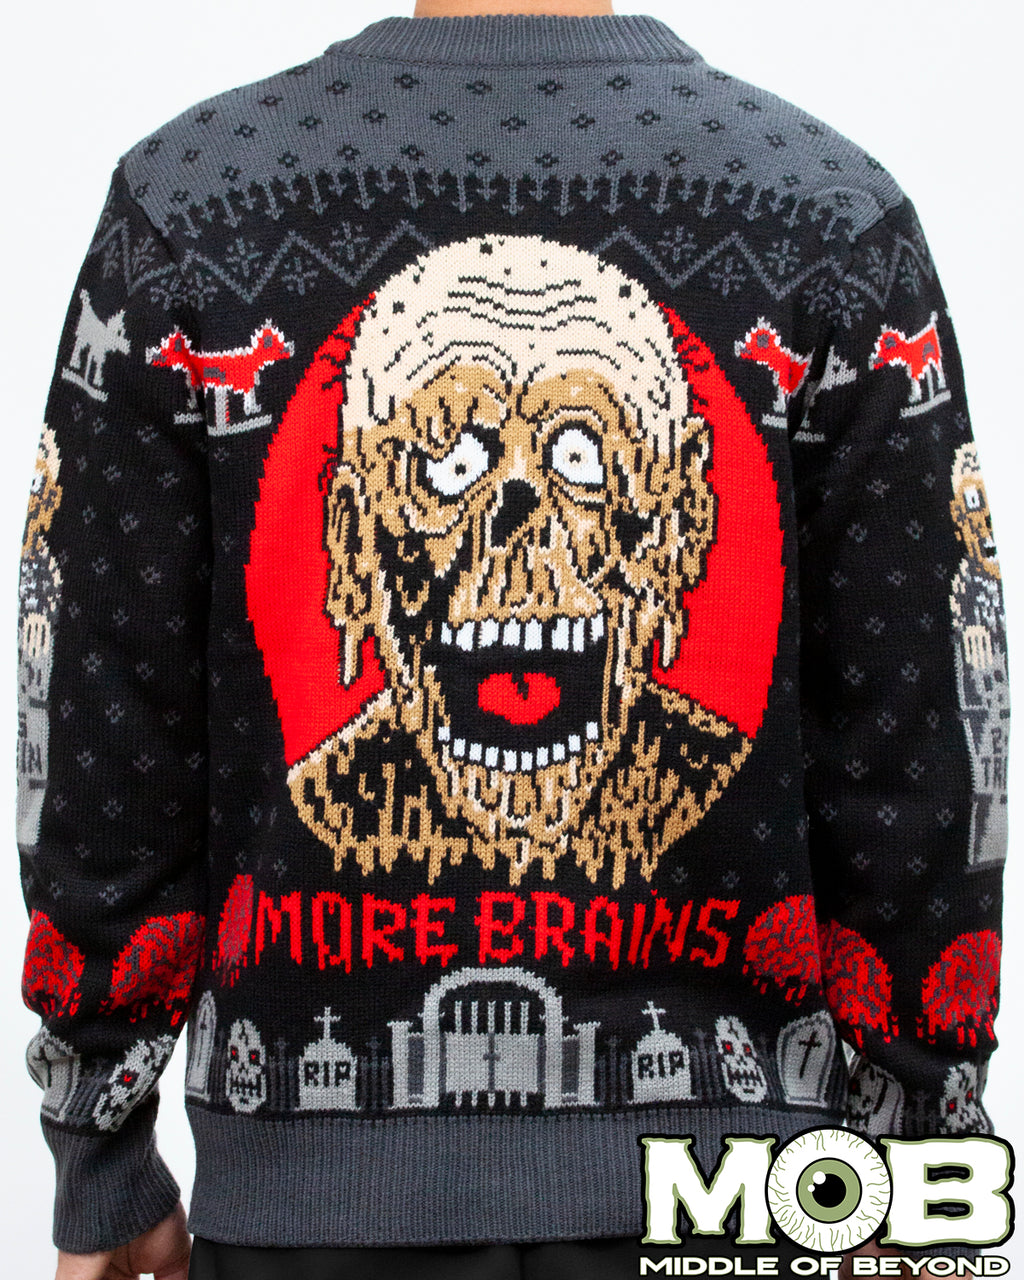 Return of the Living Dead Cardigan